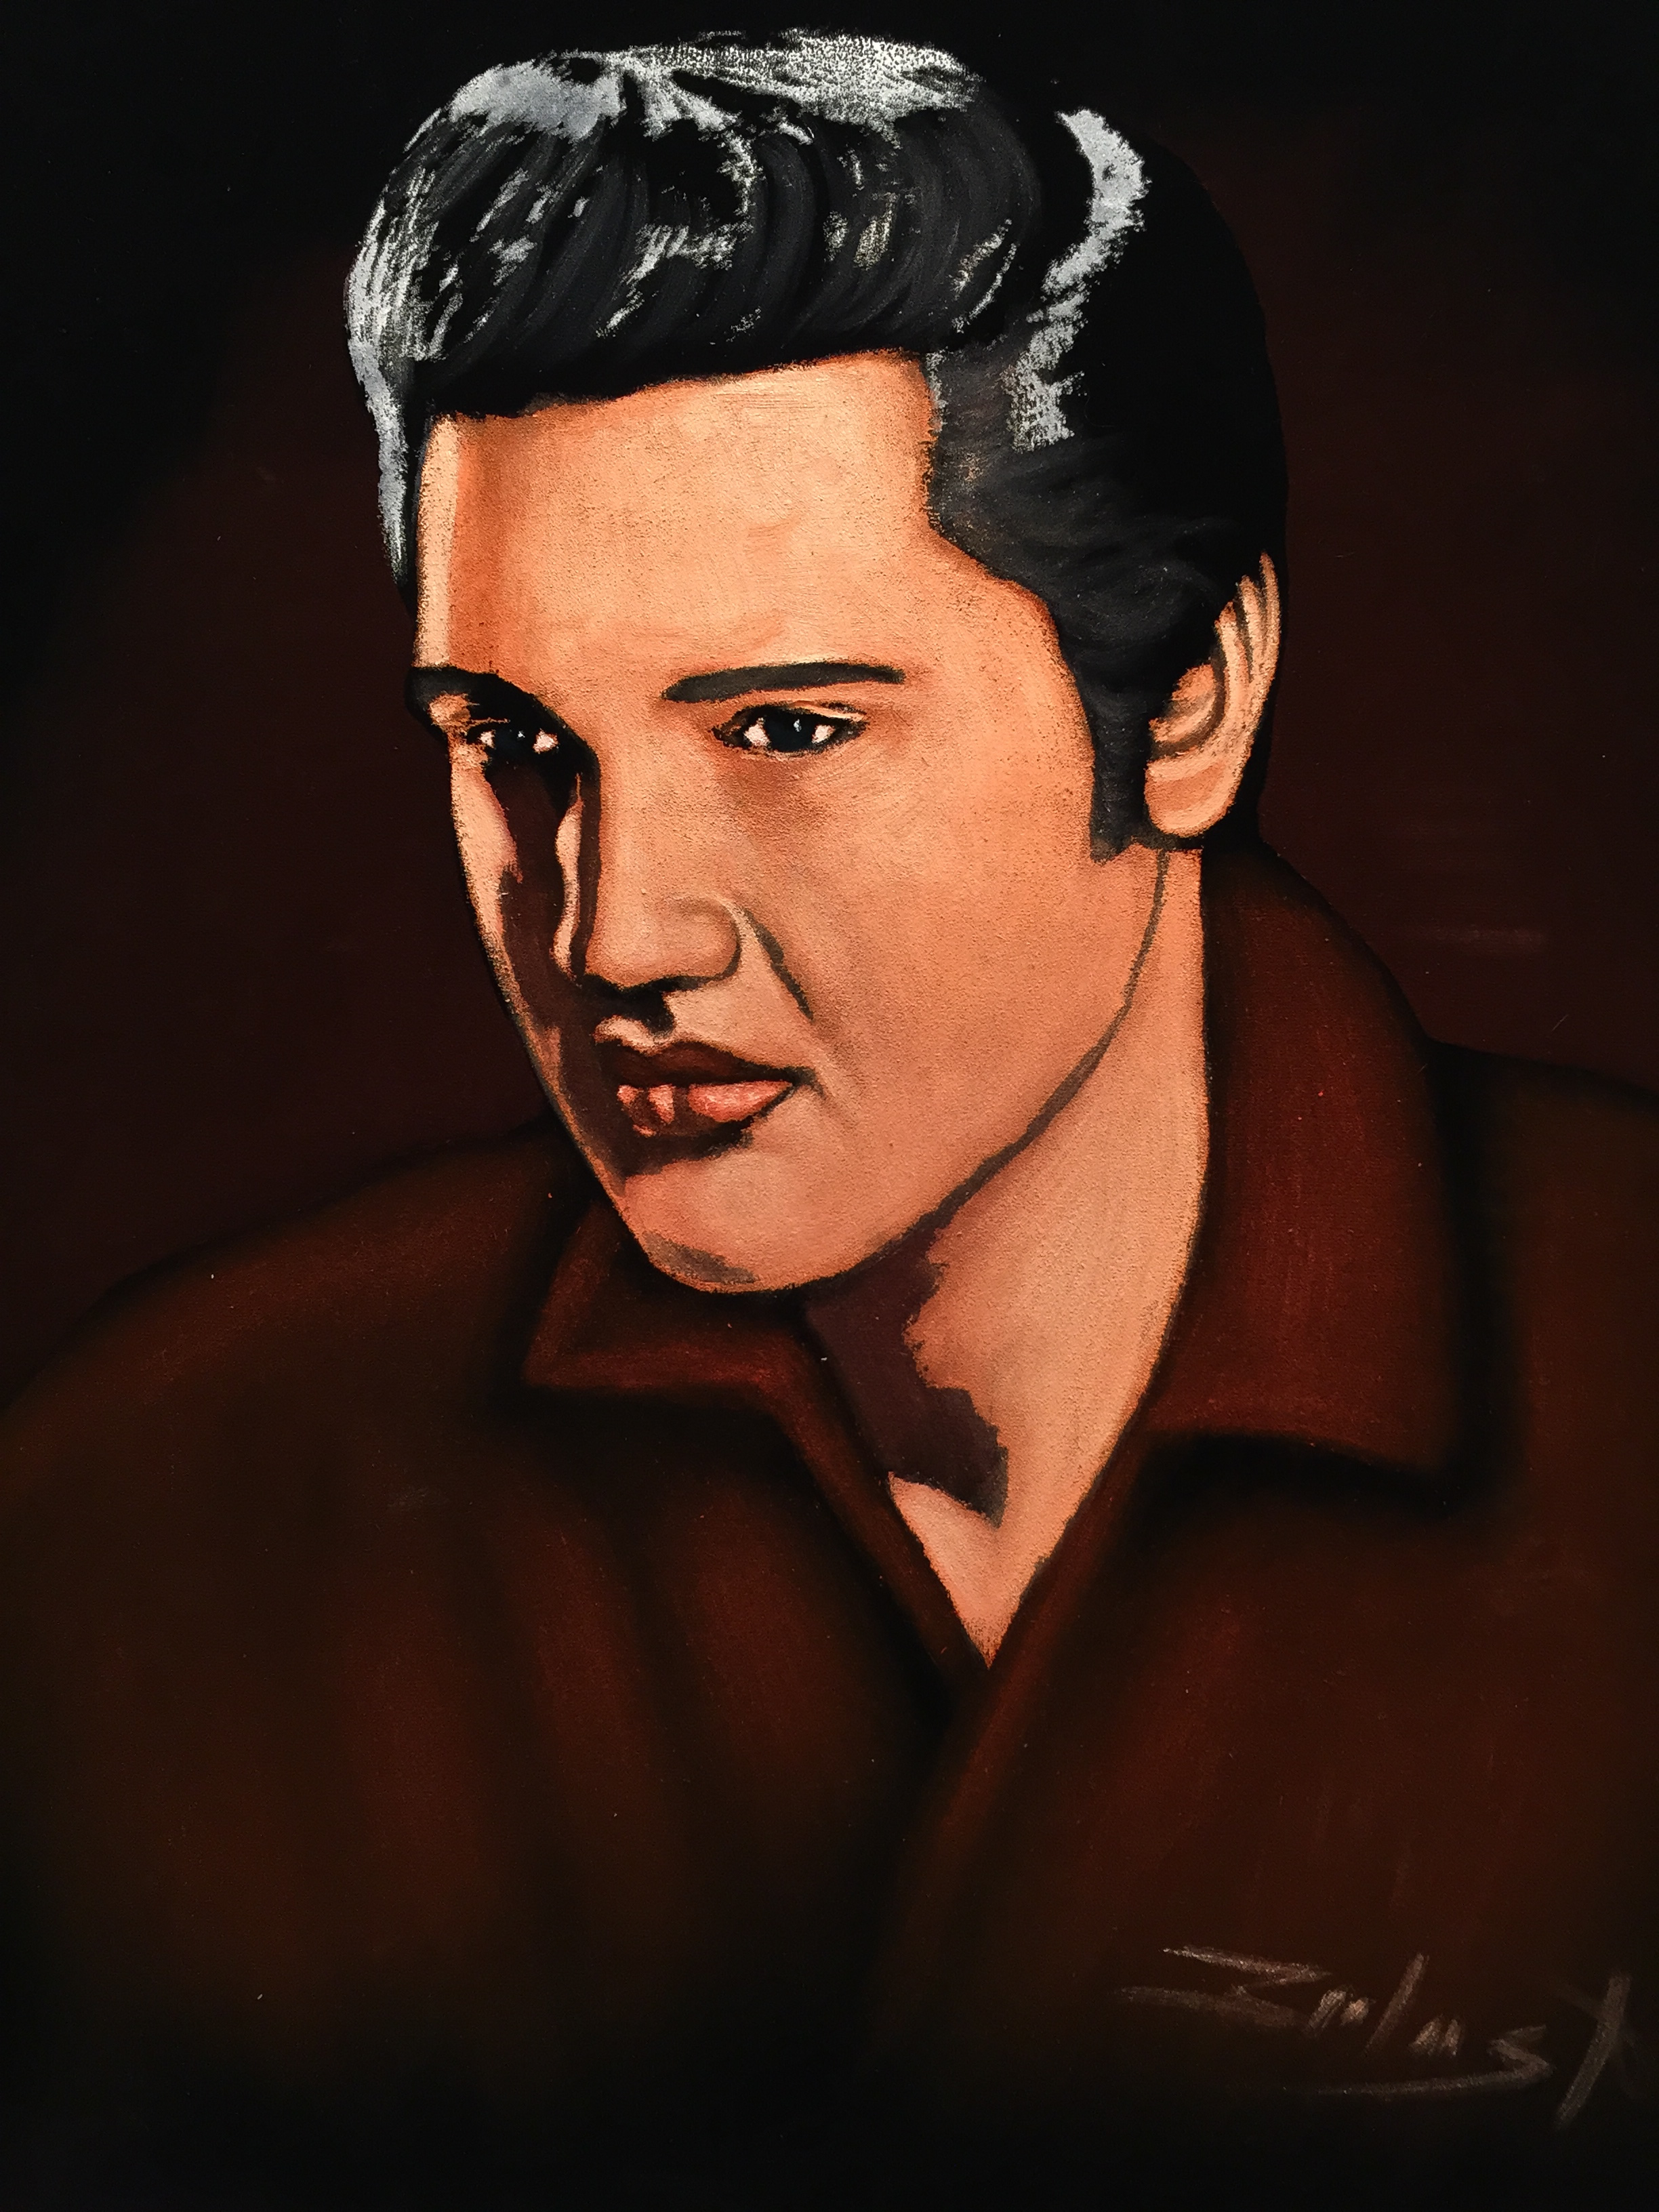 Red Shirt Velvet Elvis oil painting by Mago Zalas